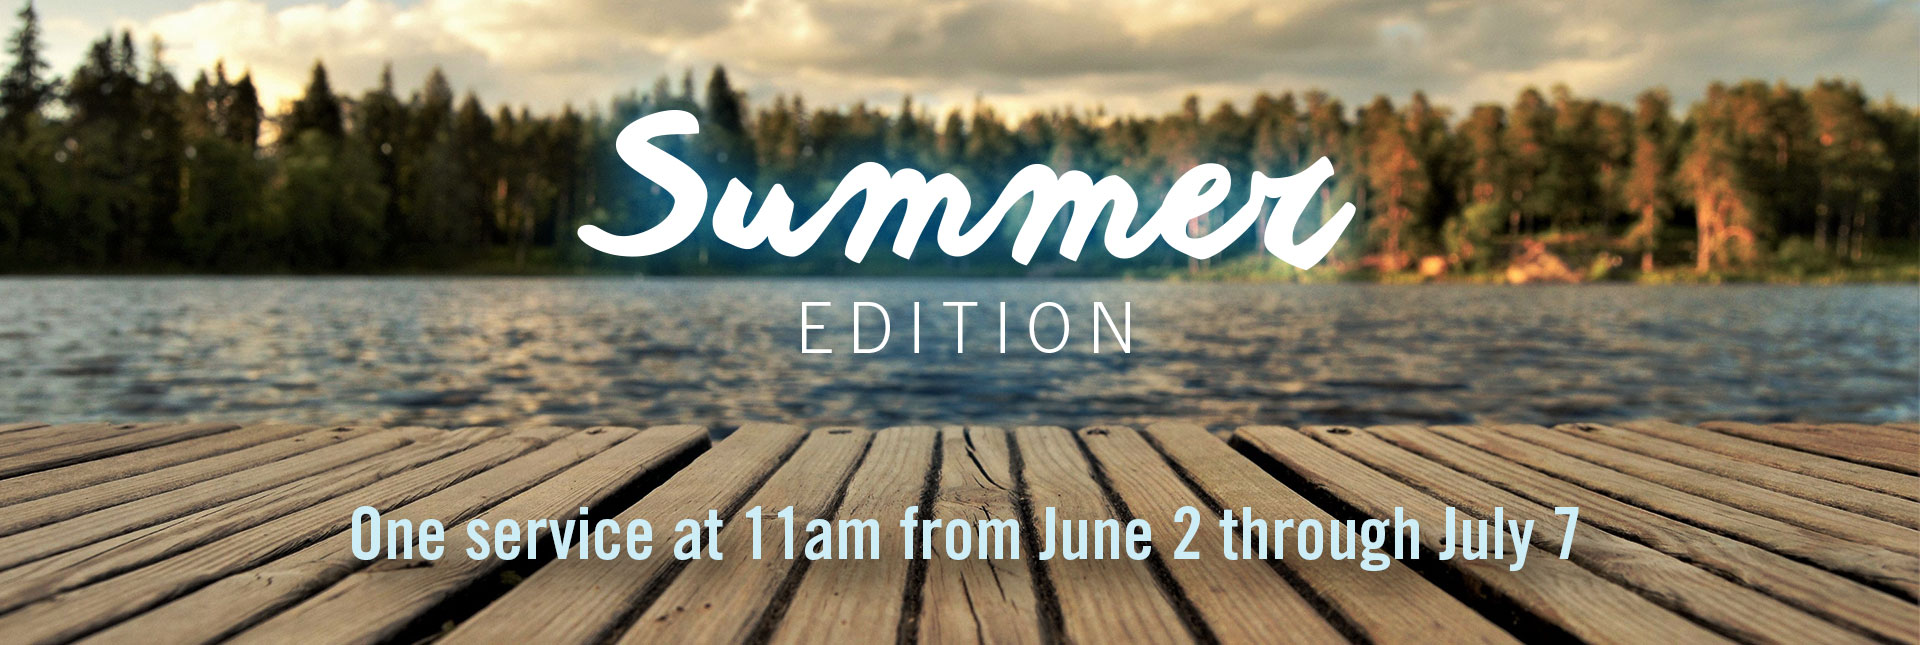 Summer Edition means only one service at 11am from June 2 through July 7